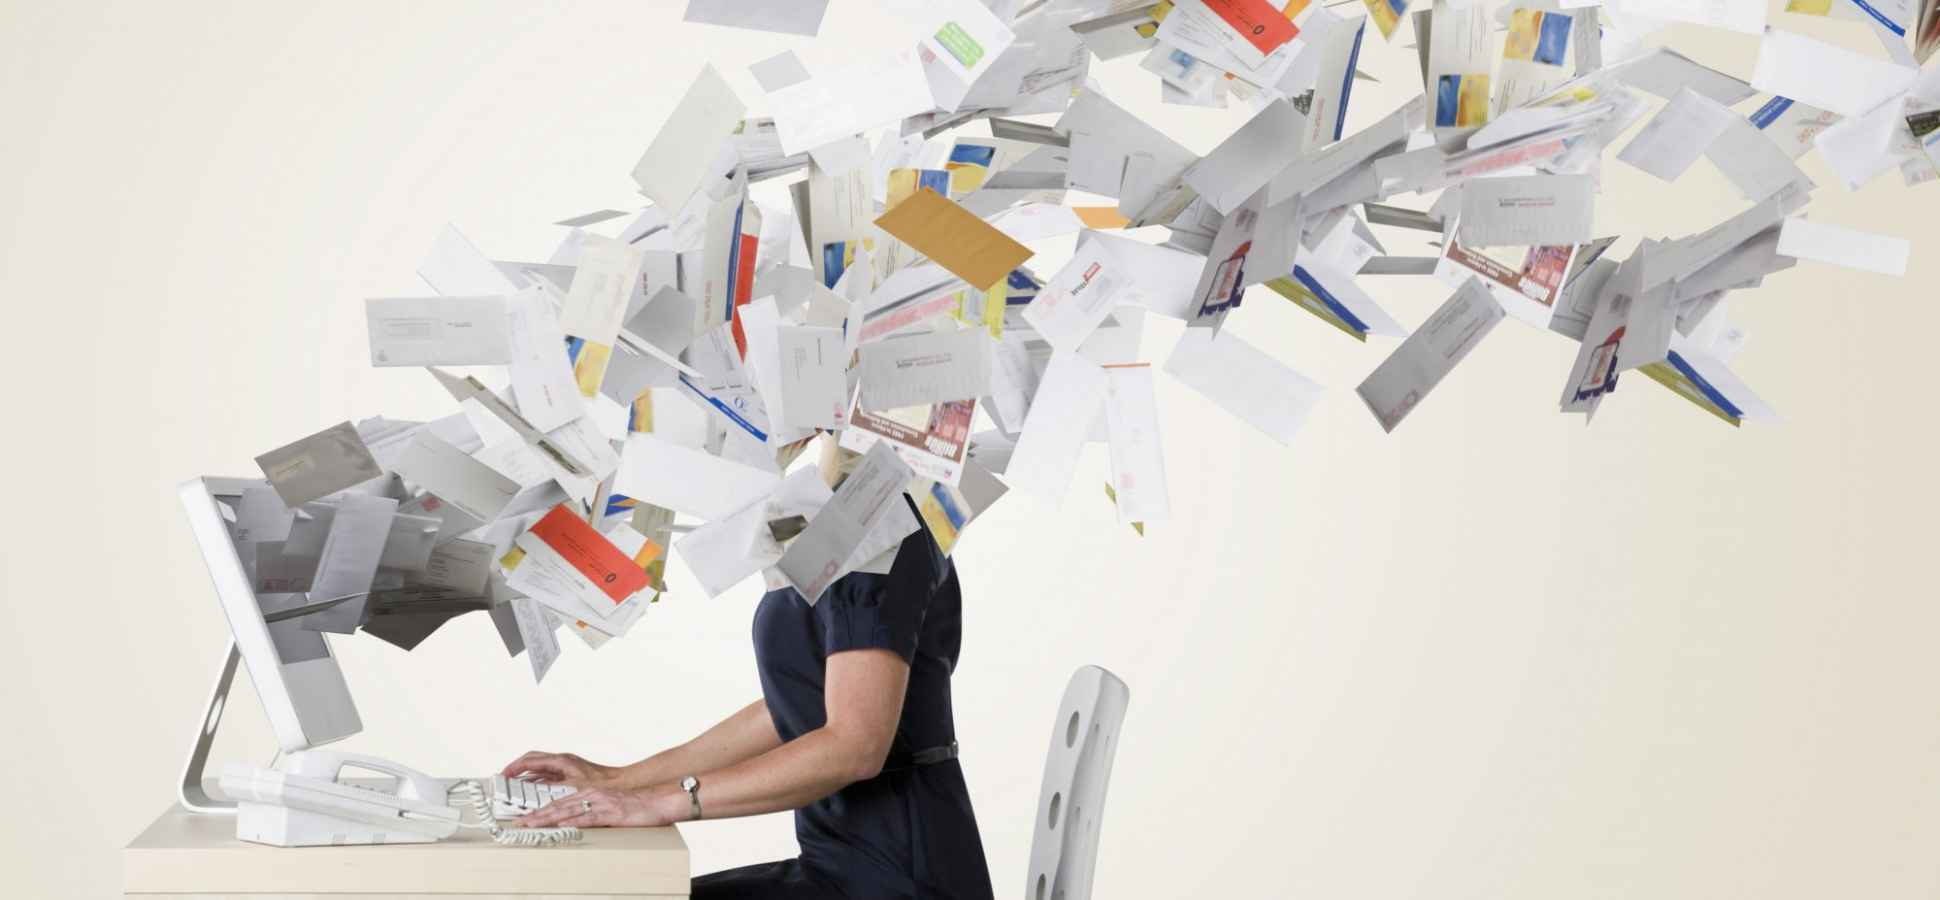 How to Find Anyone's Email (and Then What to Do With It)